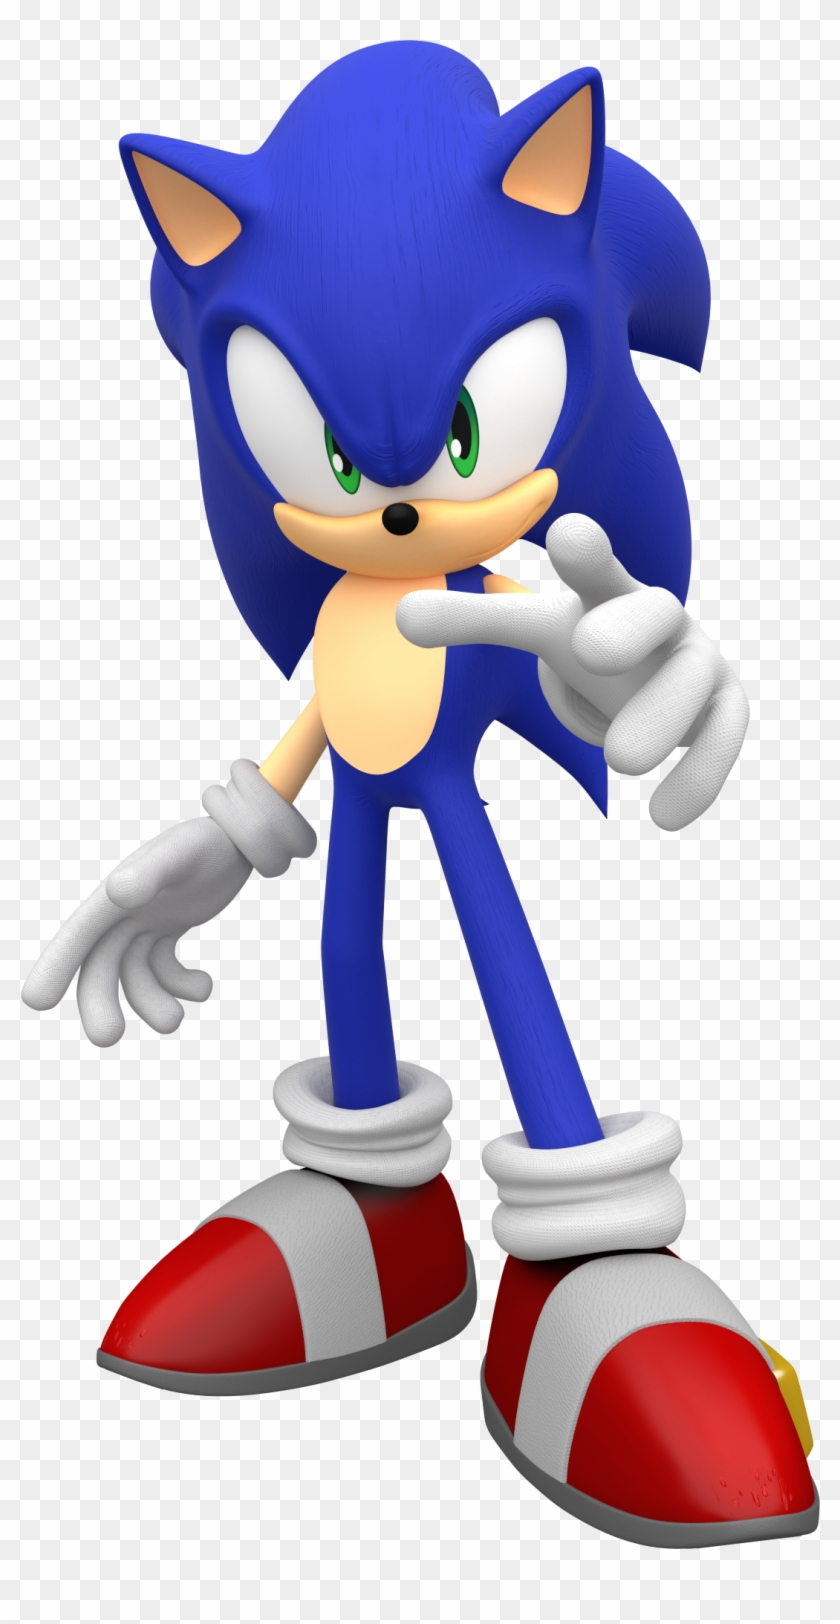 sonic the hedgehog 2006 sonic movie